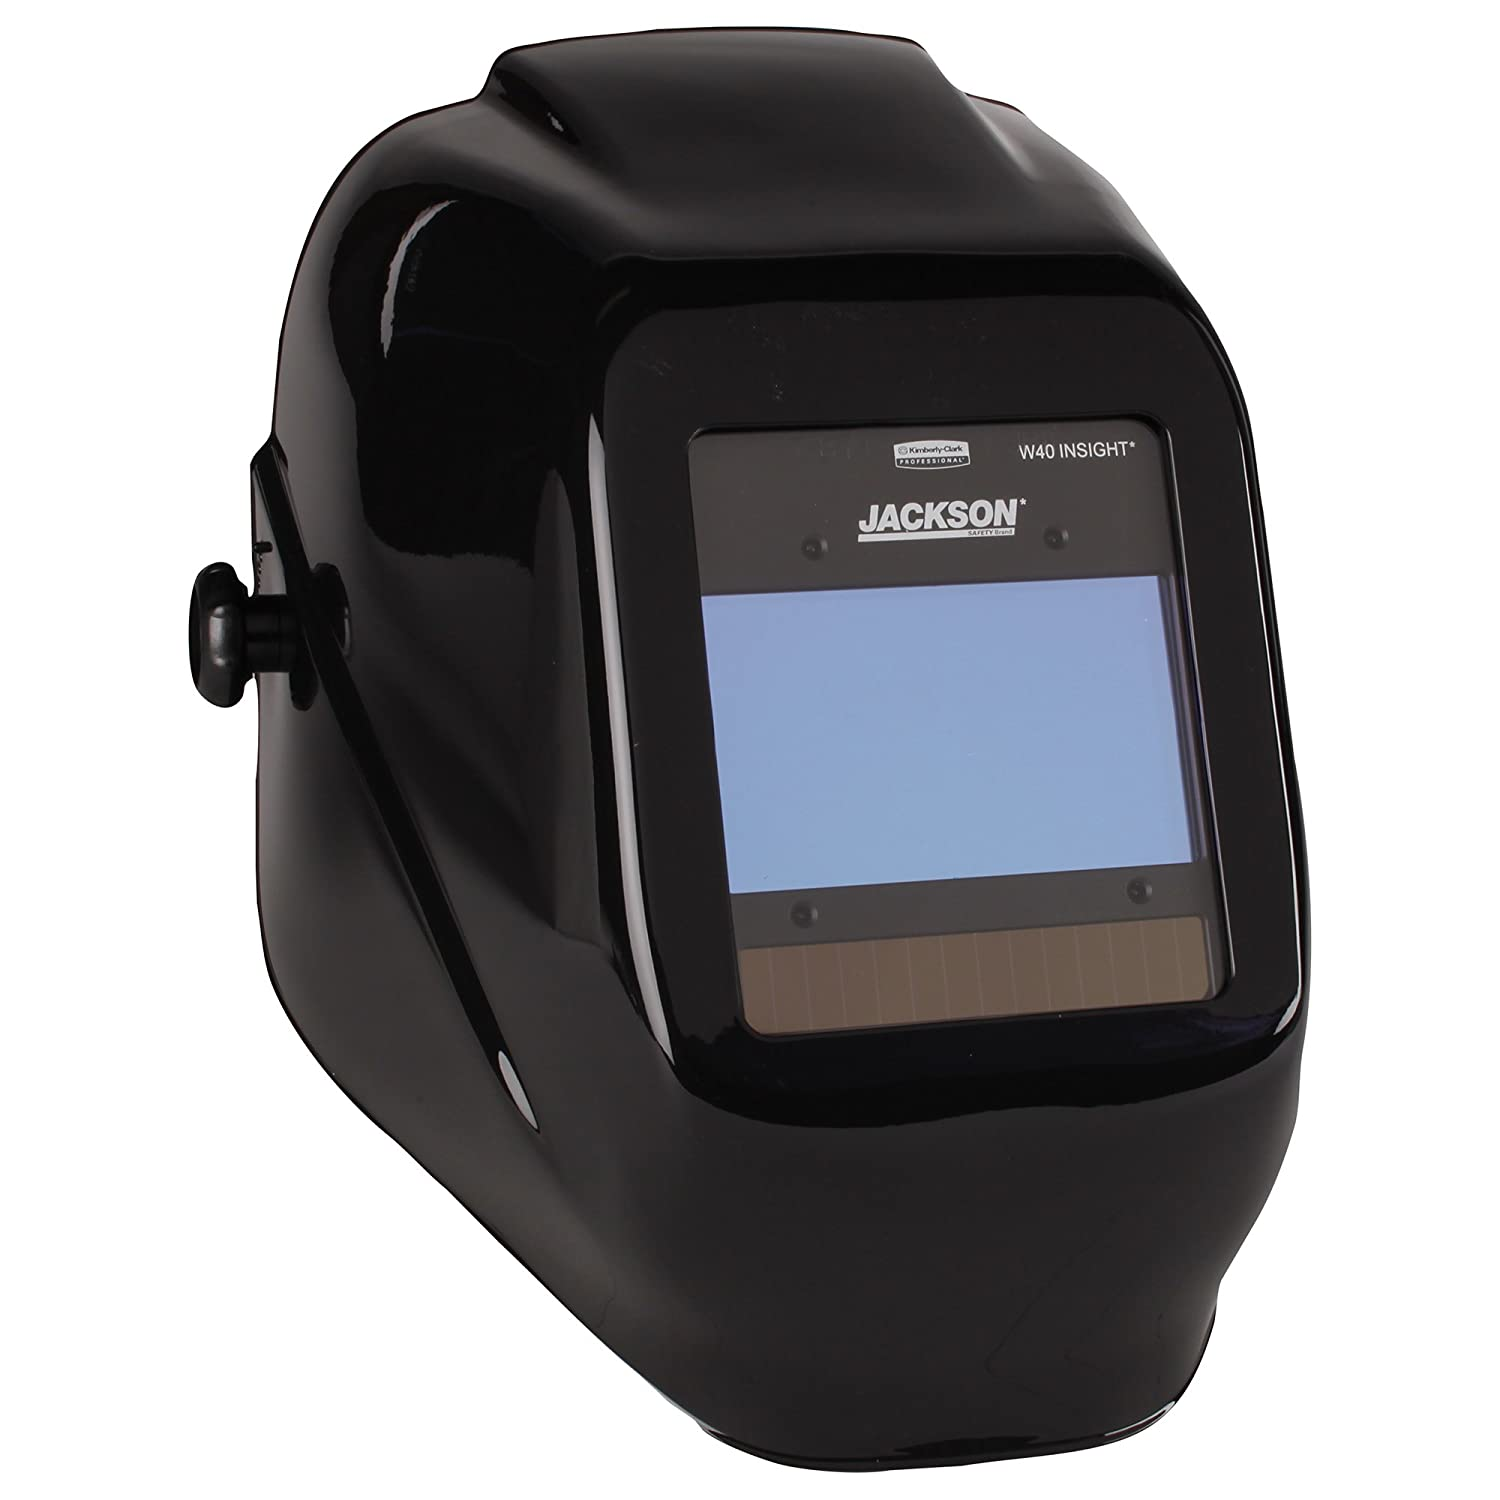 Jackson Safety W40 Insight Variable Auto Darkening Welding Helmet